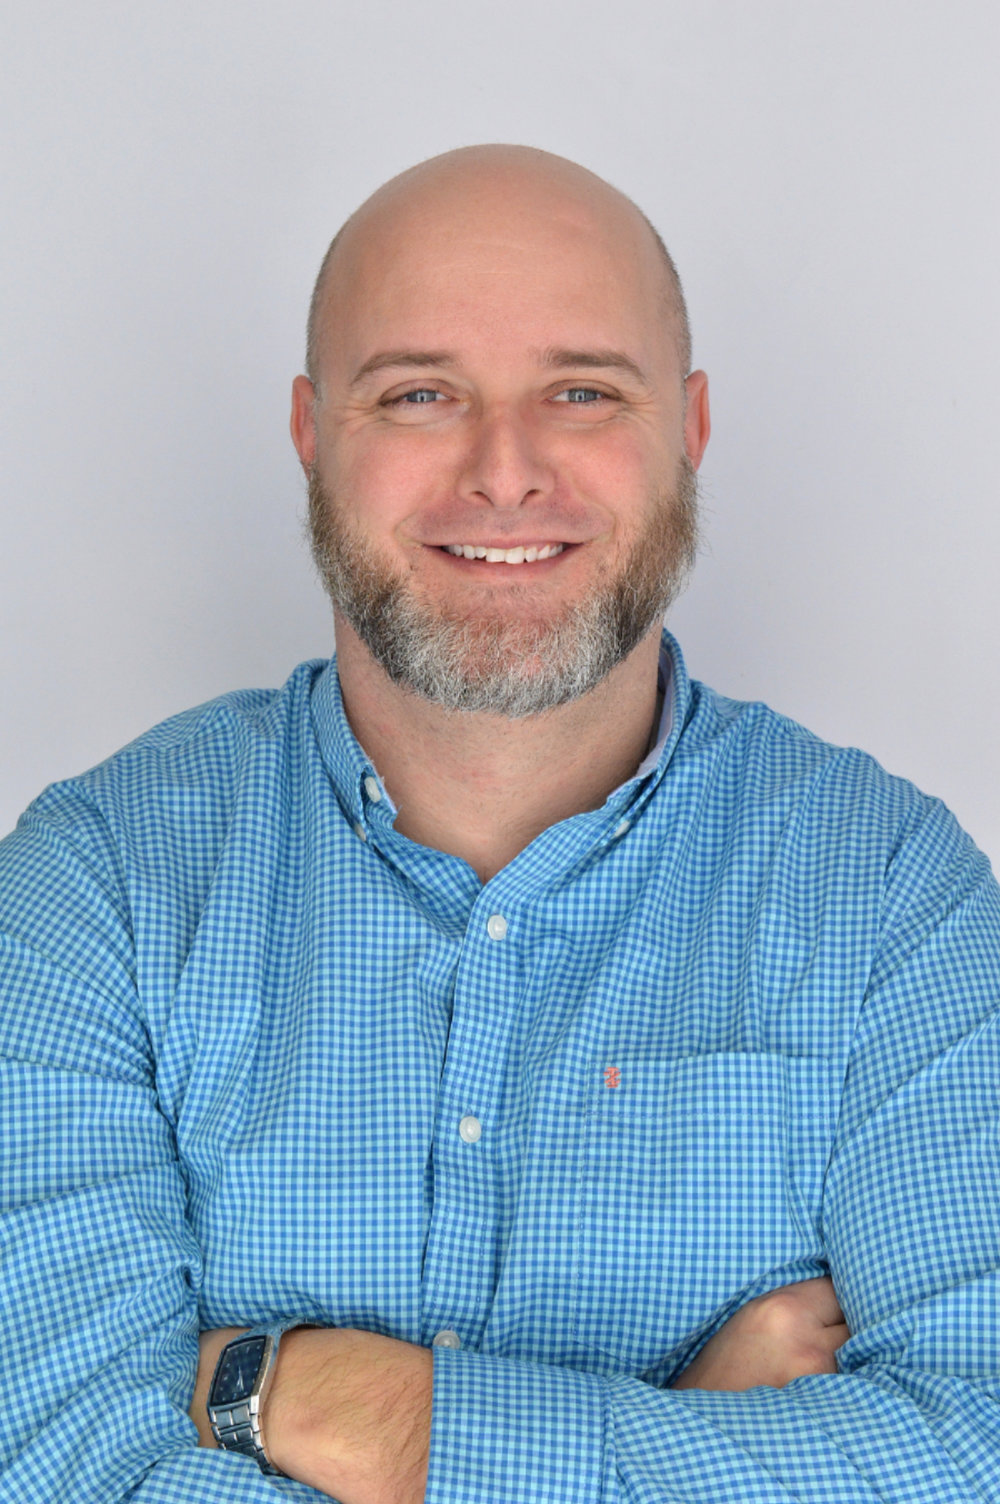 Mike Tanner - Communications and Marketing SpecialistDivine Renovation